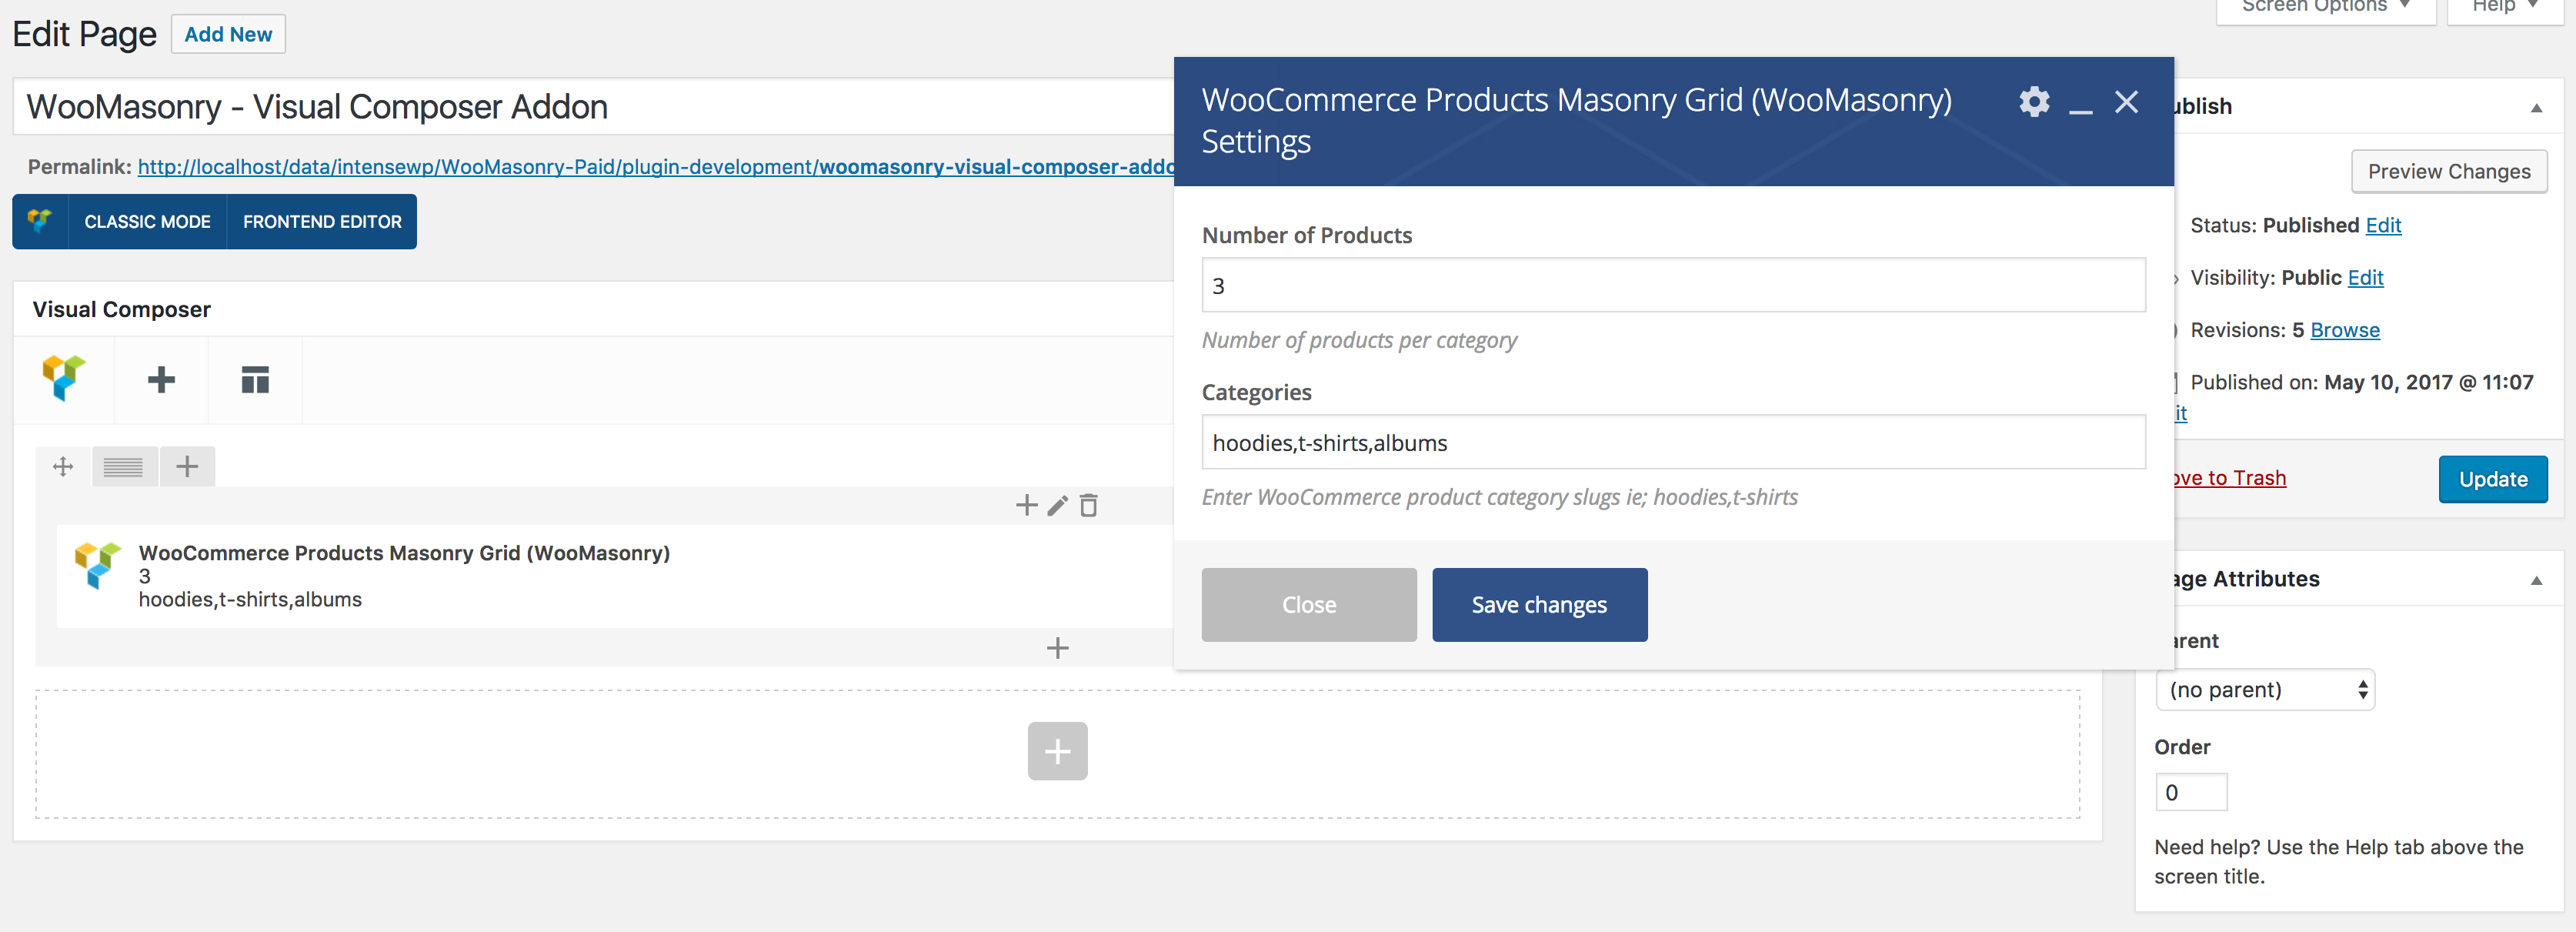 WooCommerce Products Masonry Grid - Visual Composer Supported